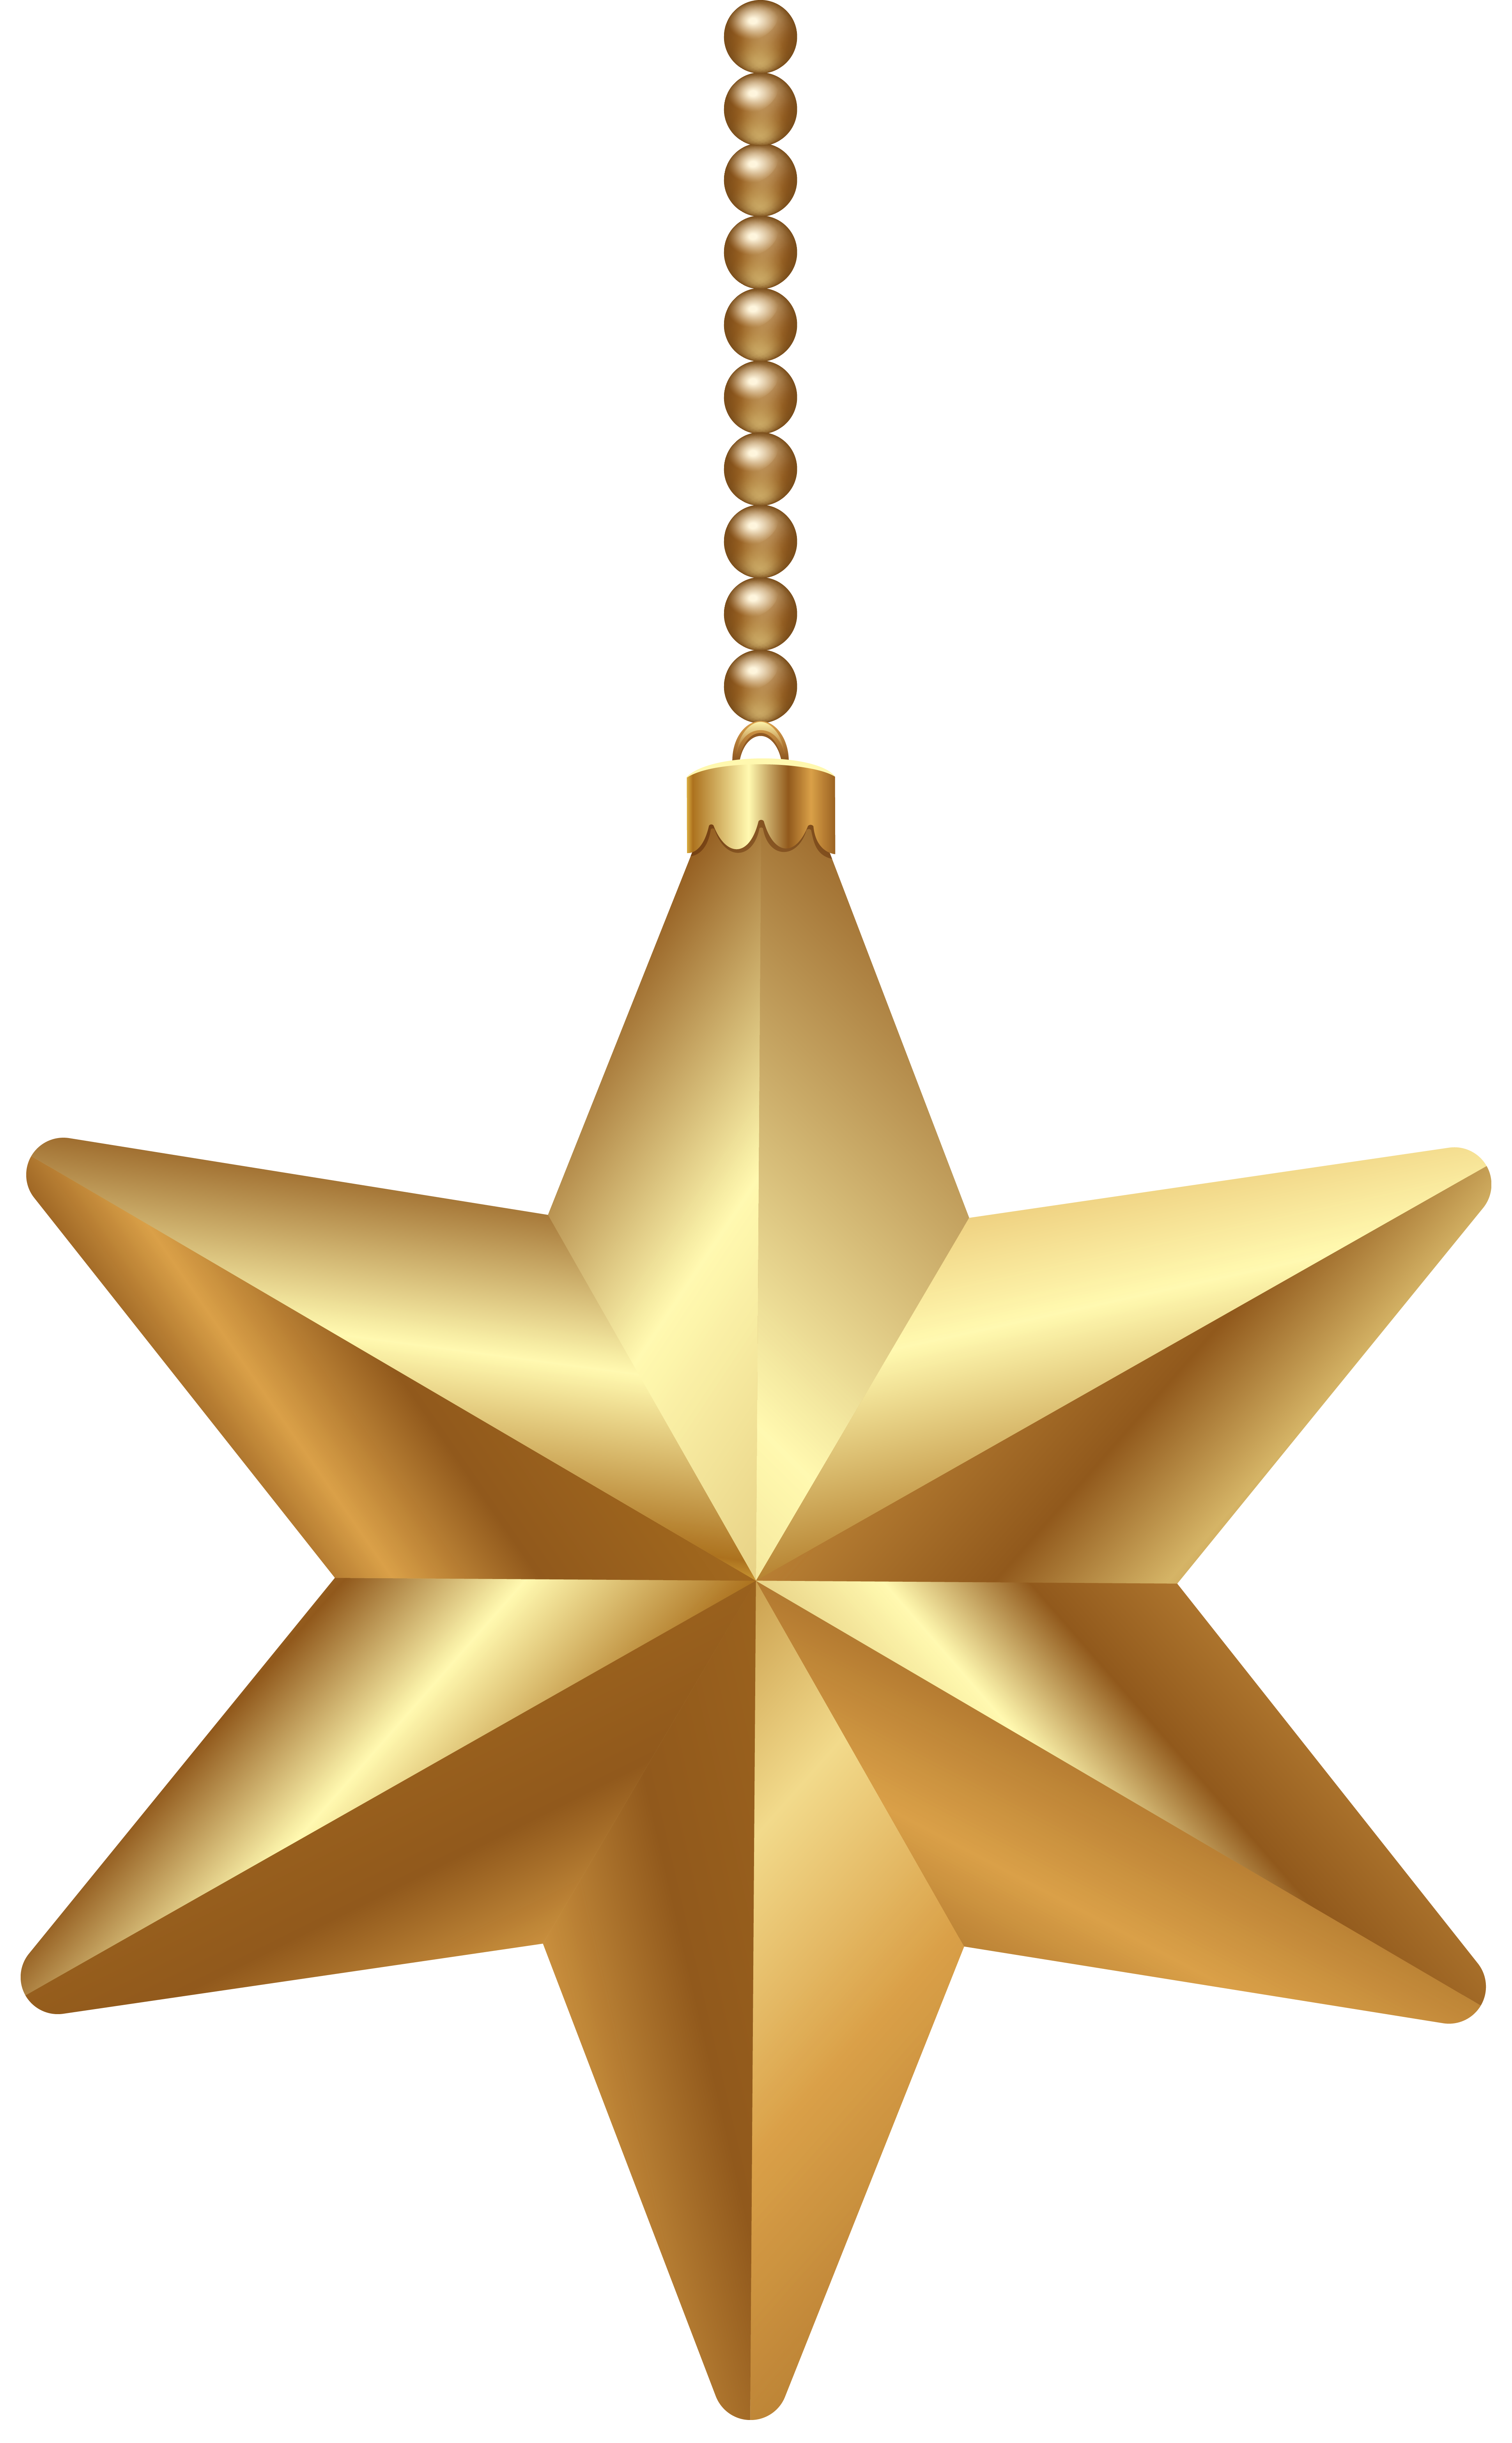 Gold Christmas Star PNG Clipart Image.